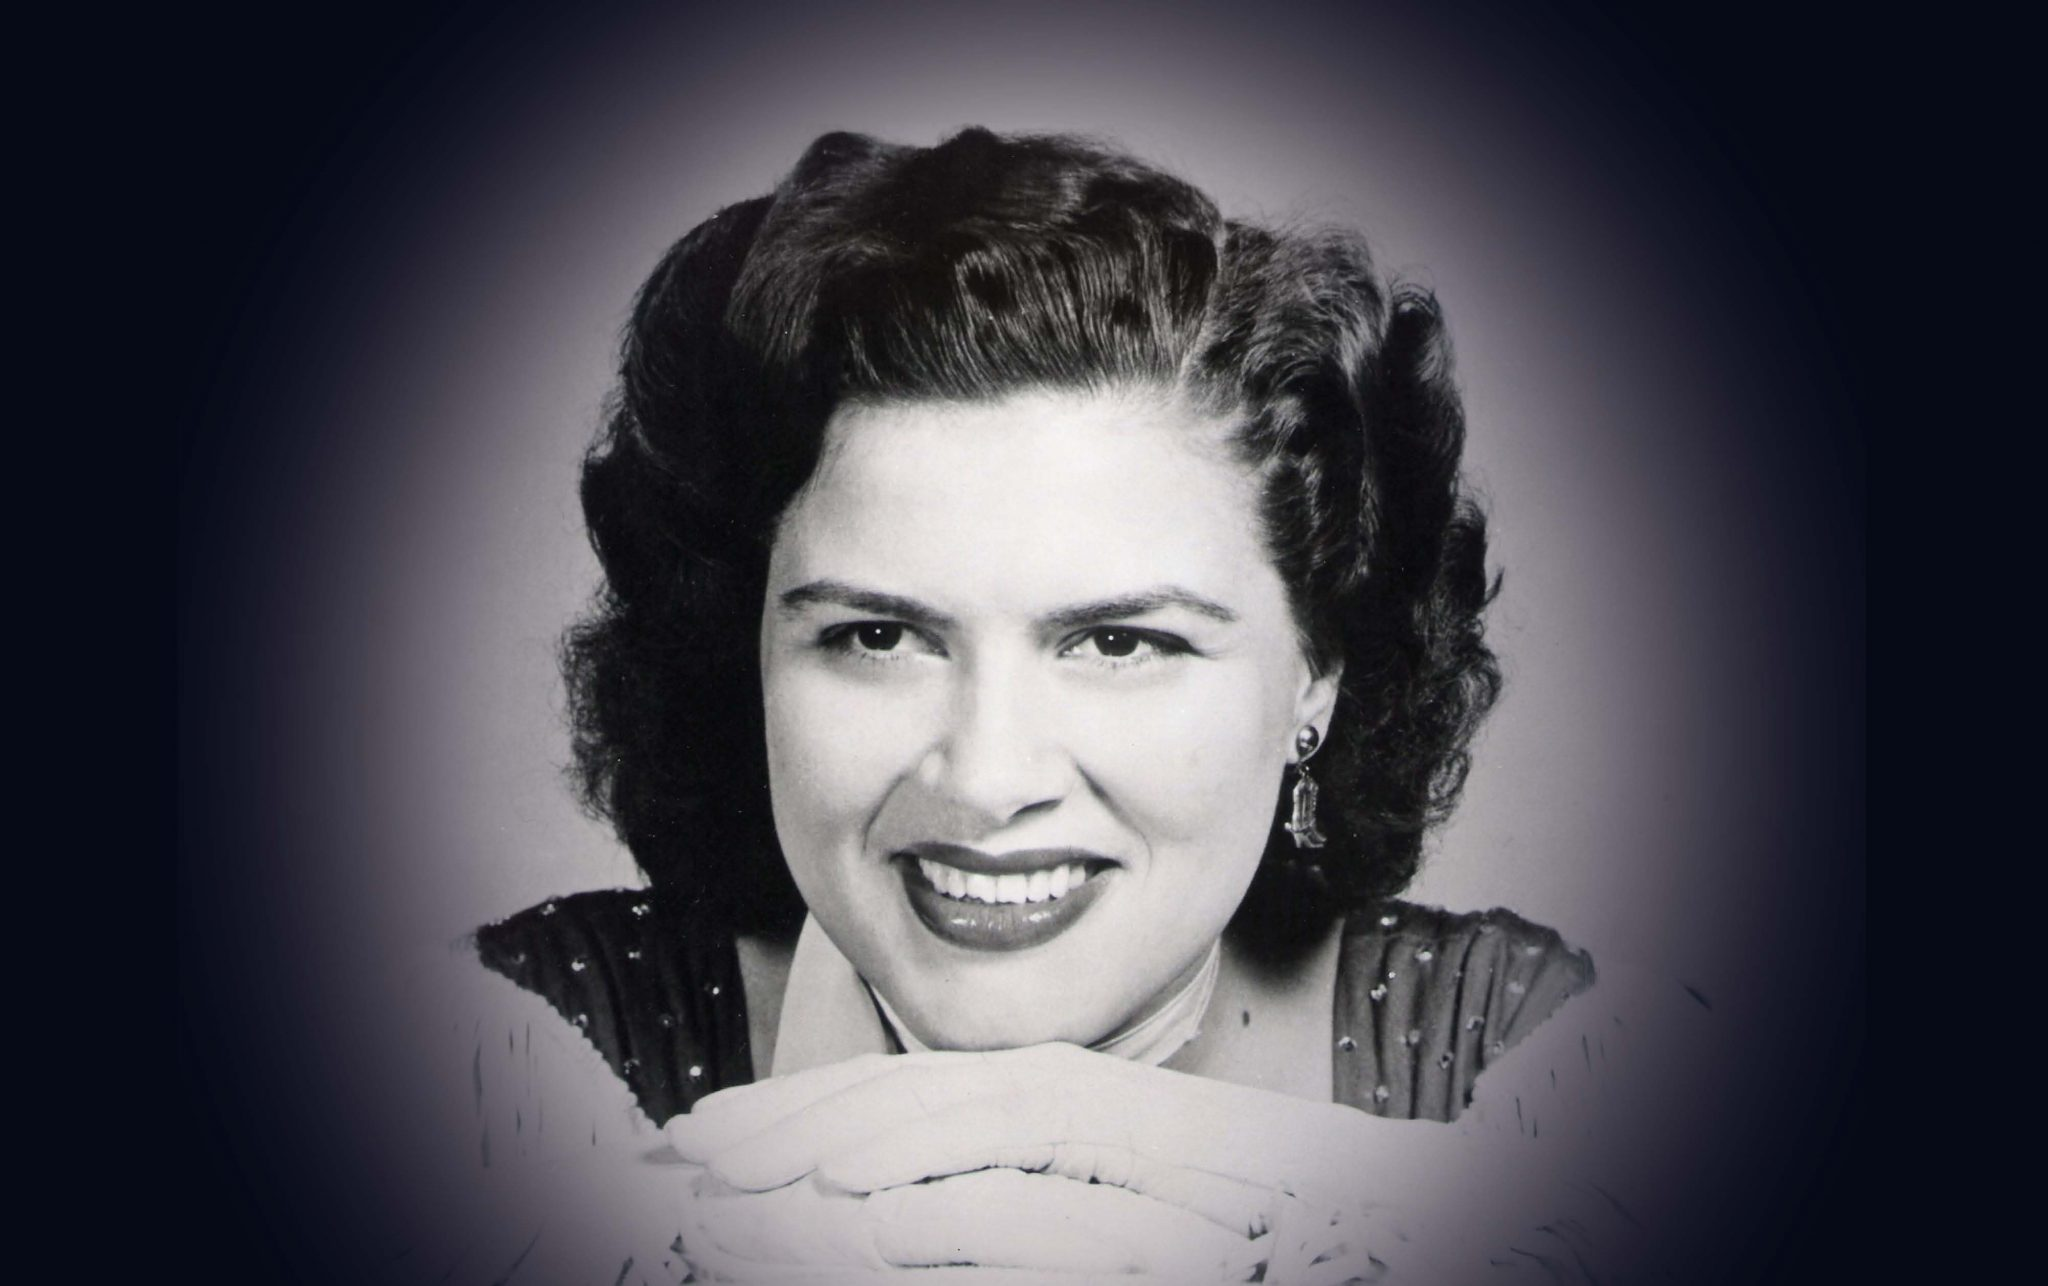 PAST EVENT: A Closer Walk With Patsy Cline – Roxie Theatre (TX), September 2-November 12, 2017